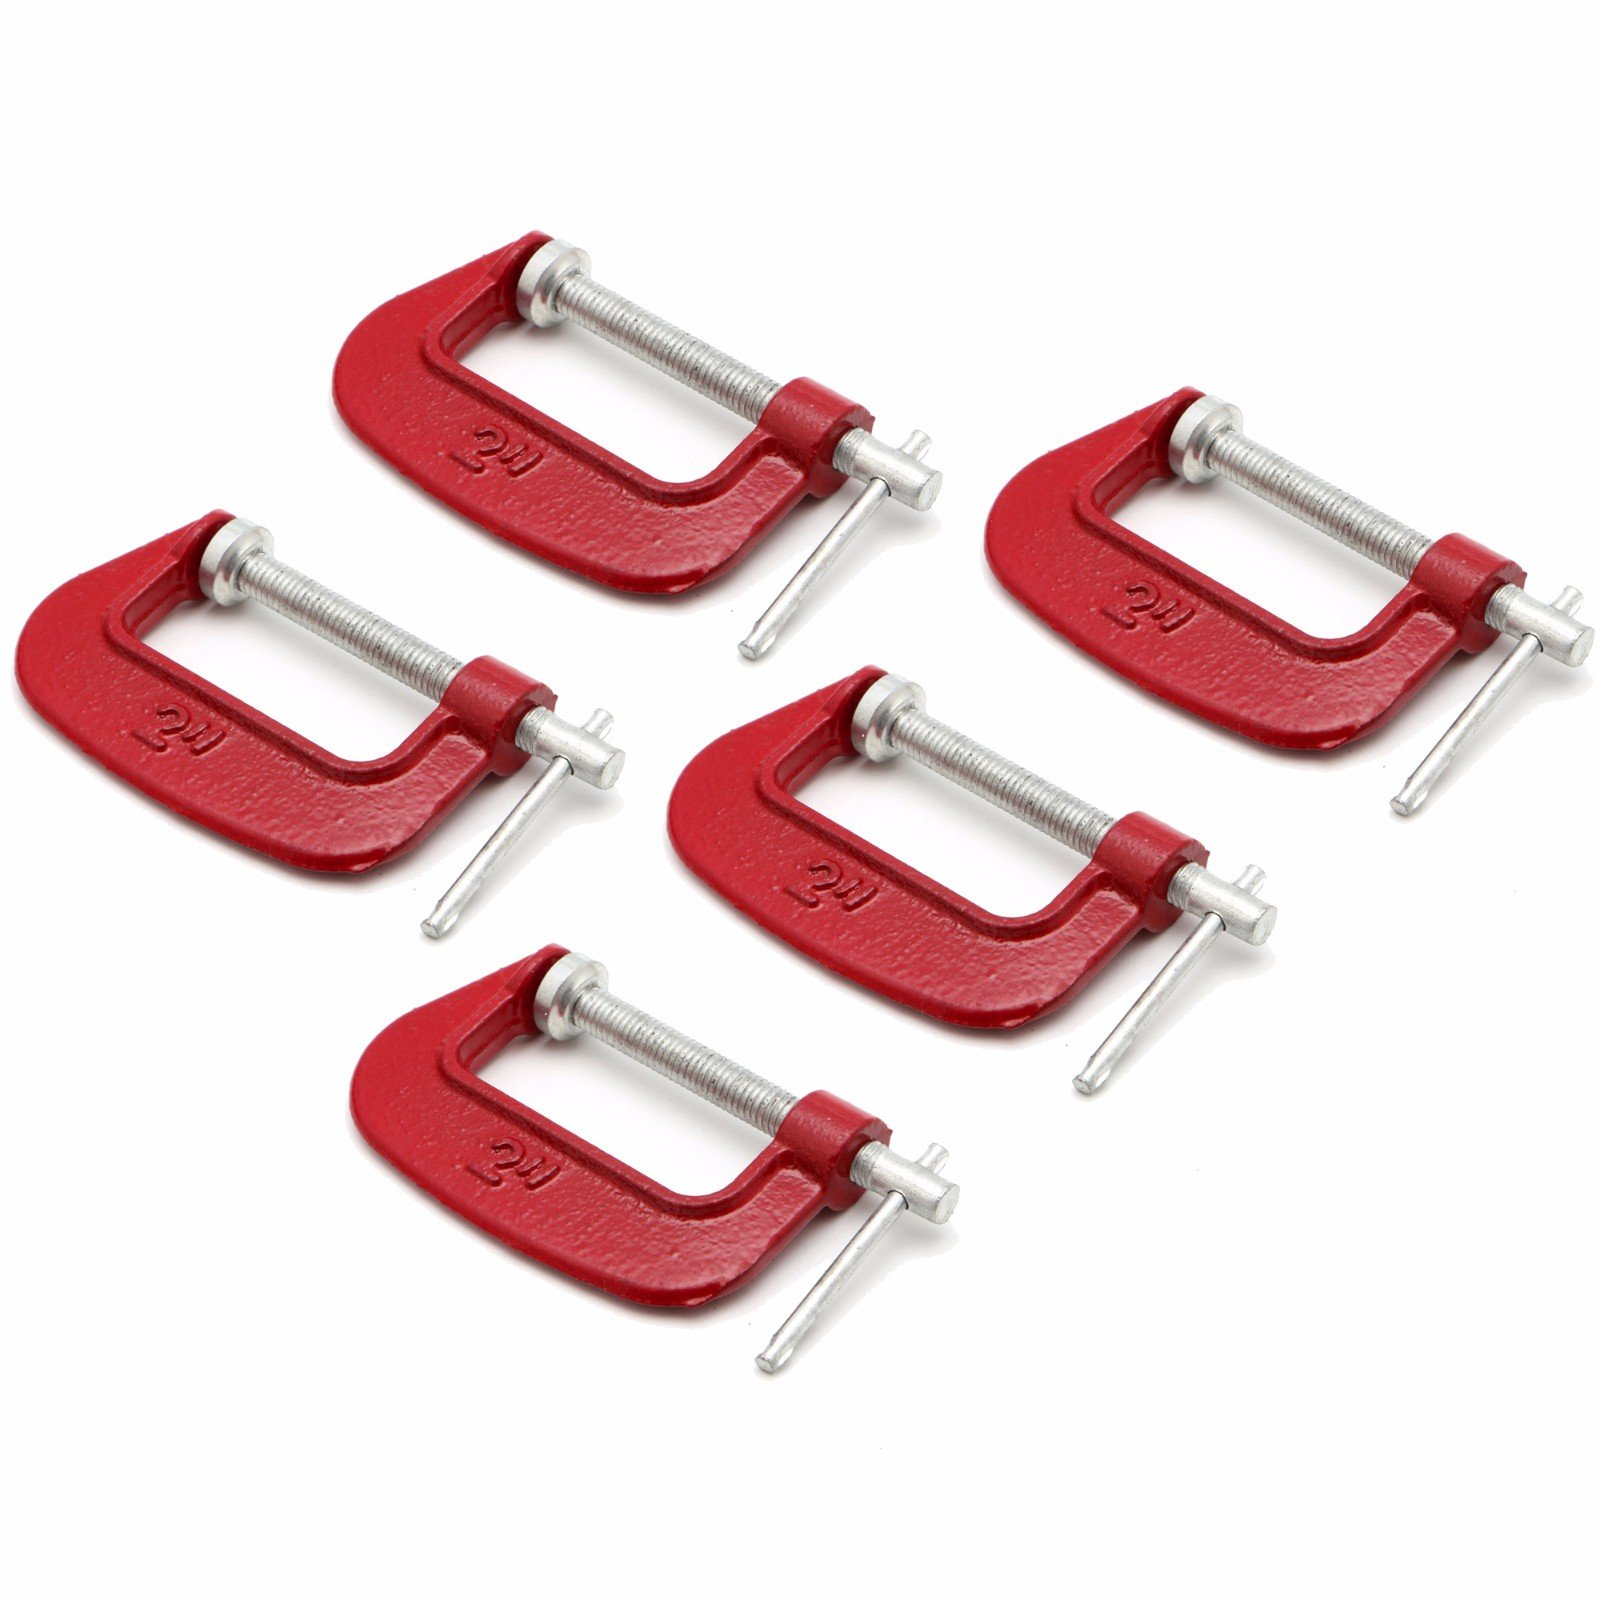 Wideskall 2'' x 1'' inch Heavy Duty Malleable C Clamp (Pack of 5)